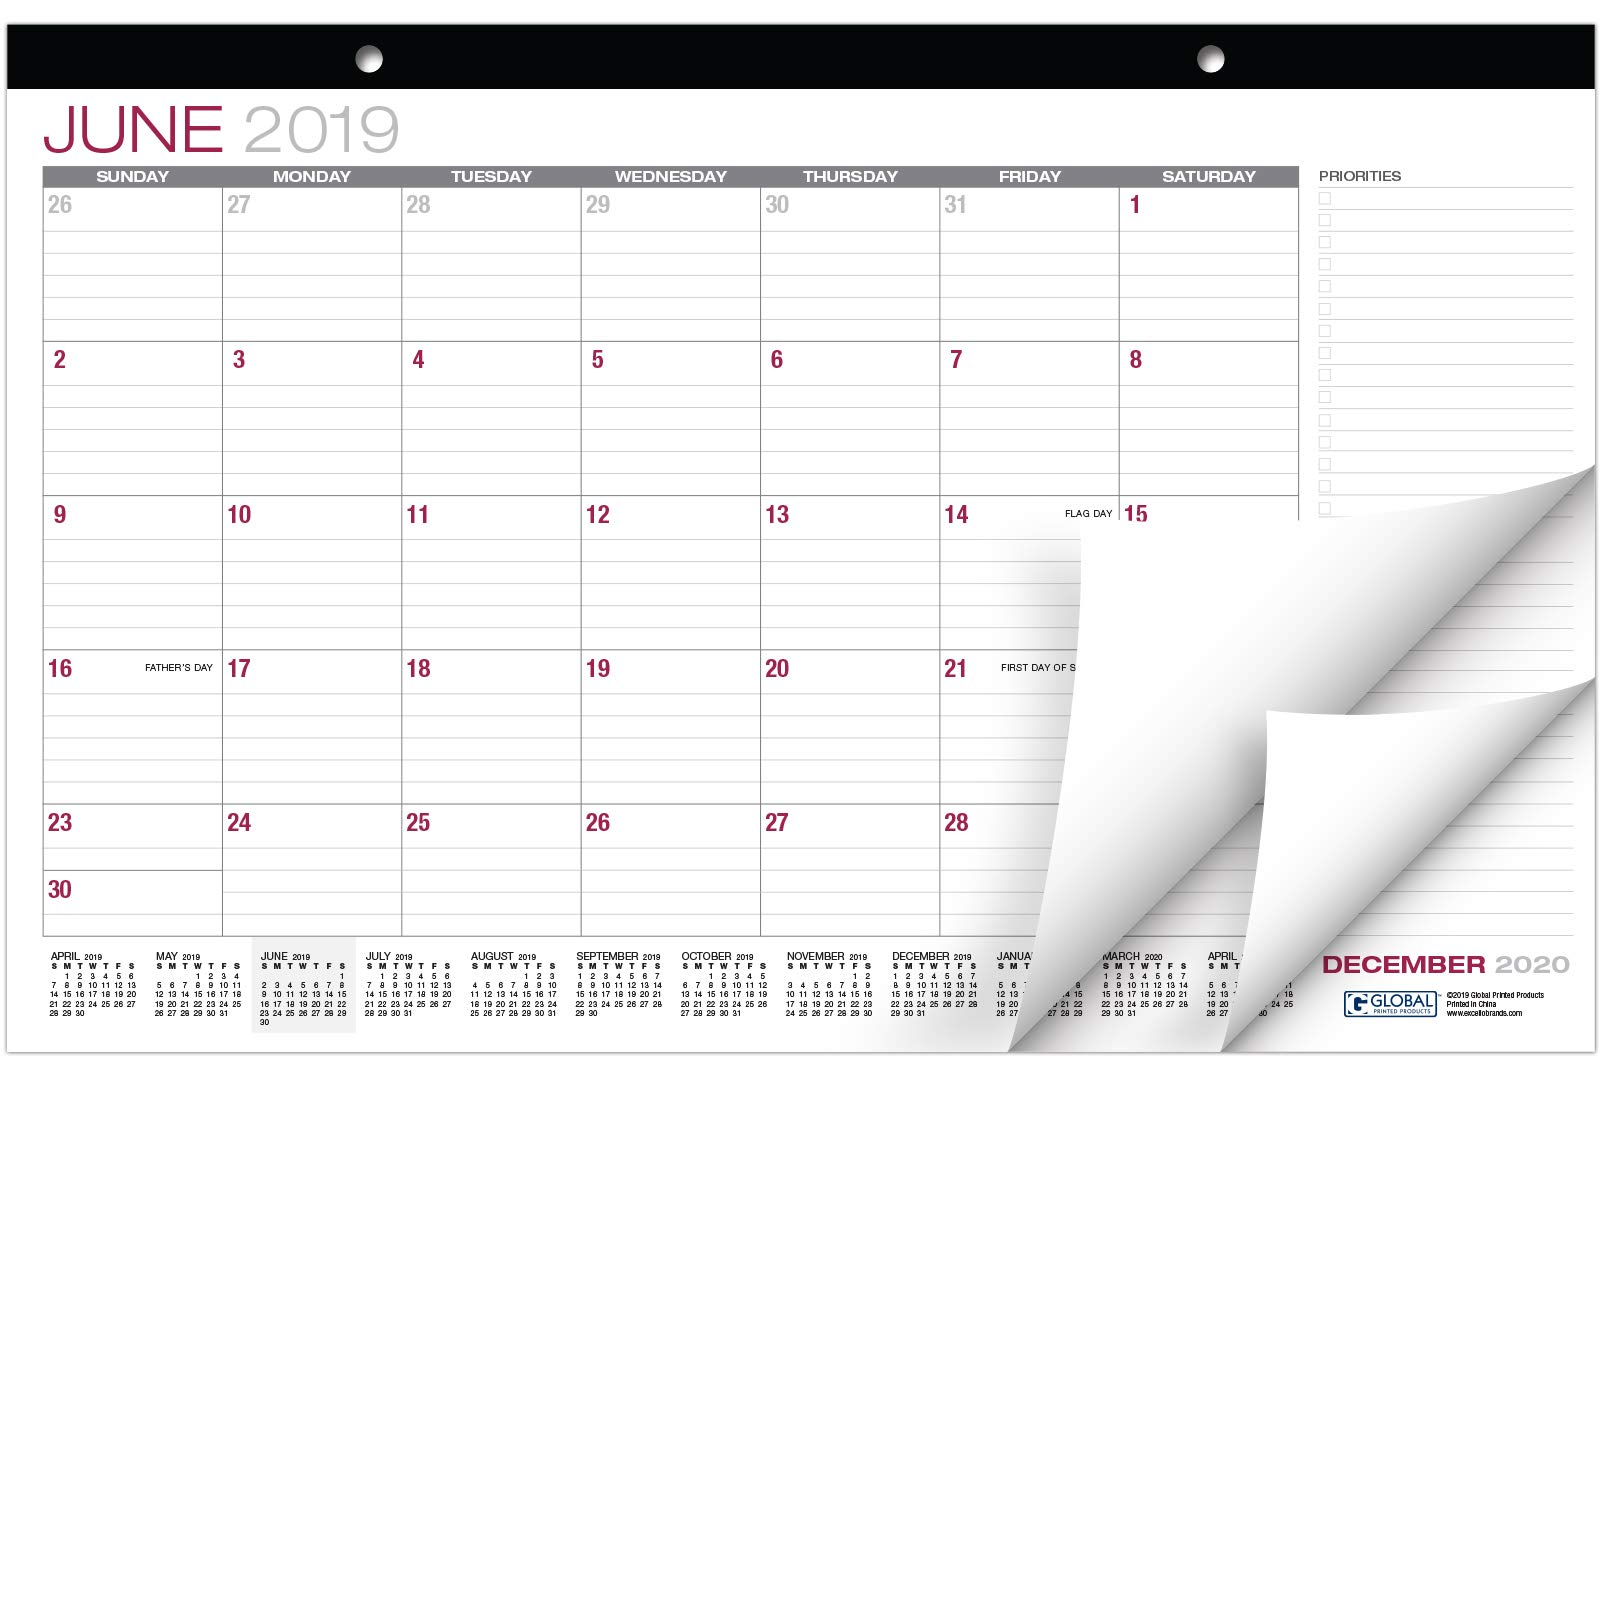 Desk Calendar 2019-2020: 11''x17'' - (Runs from June 2019 Through December 2020) by Global Printed Products